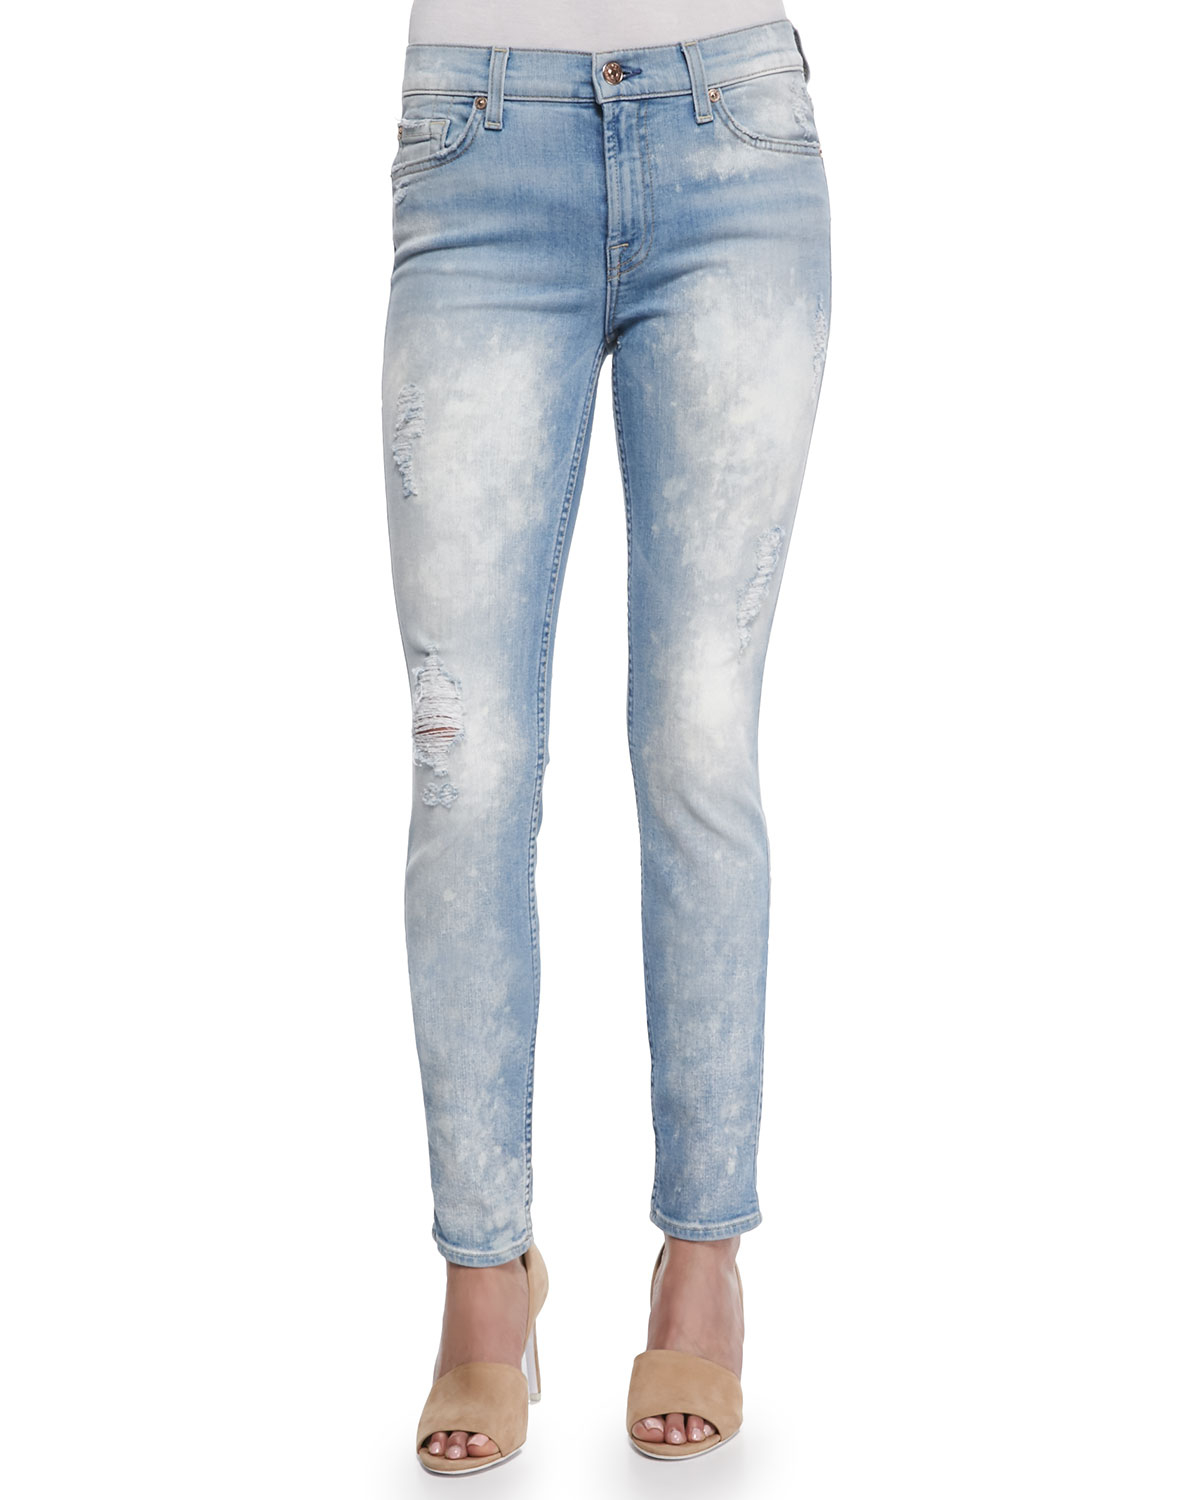 Darkwash bleached Aiko Flap Skinny jeans from Silver Jeans in a size 28 x These jeans are in great condition with light wear, and feature embroidered and stitch detailing. They are made of 78% cot CAbi Womens Constellation Skinny Jeans Acid Wash Bleach Splatter Size